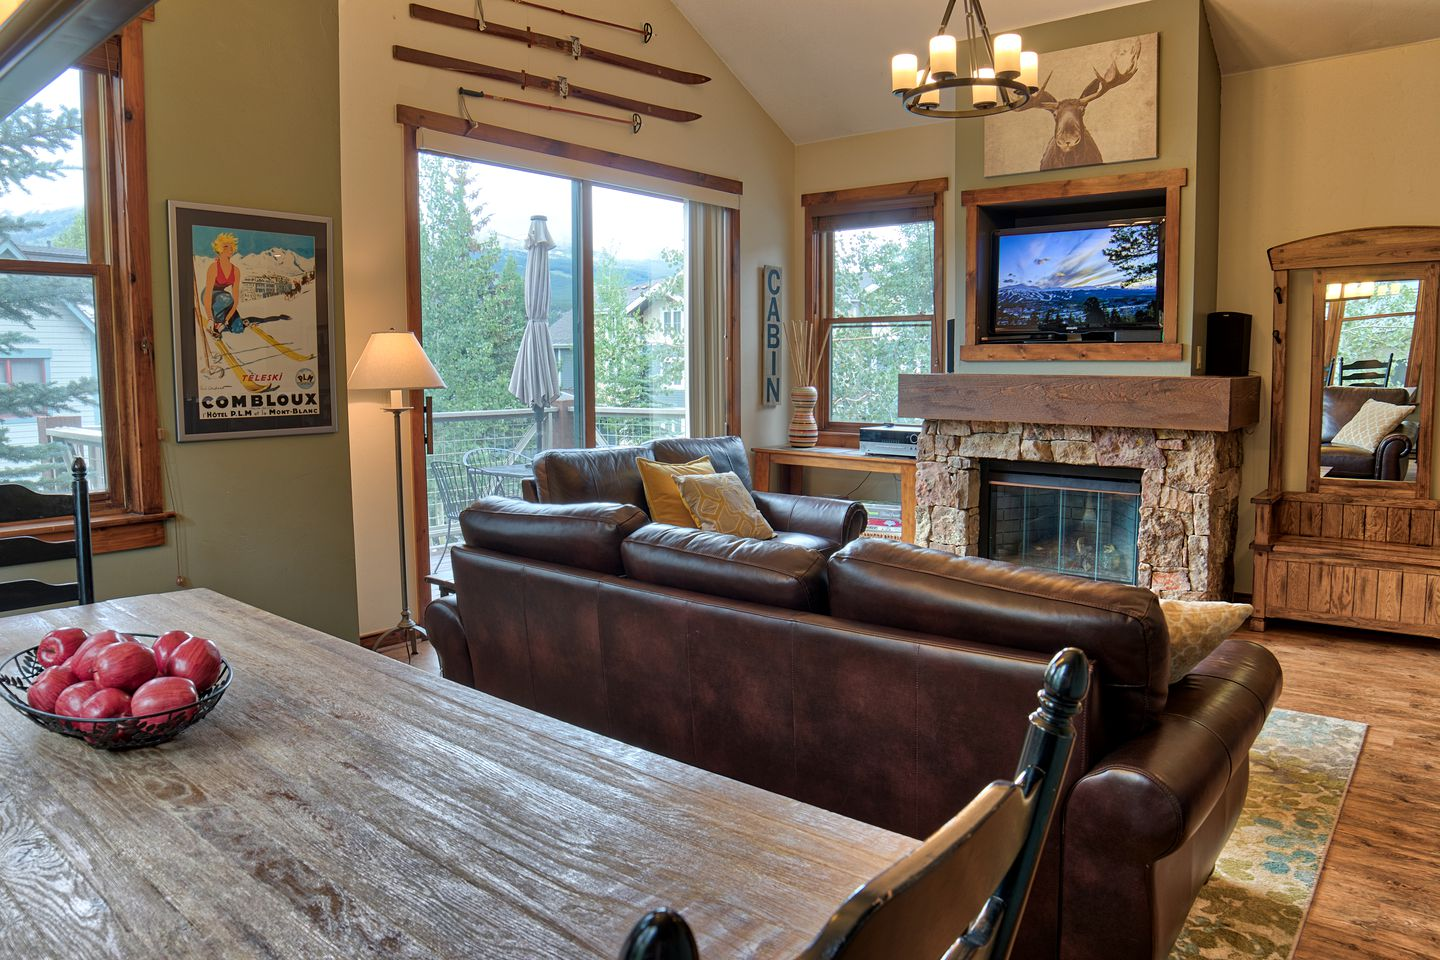 This cabin is ideal for getaways in Breckenridge